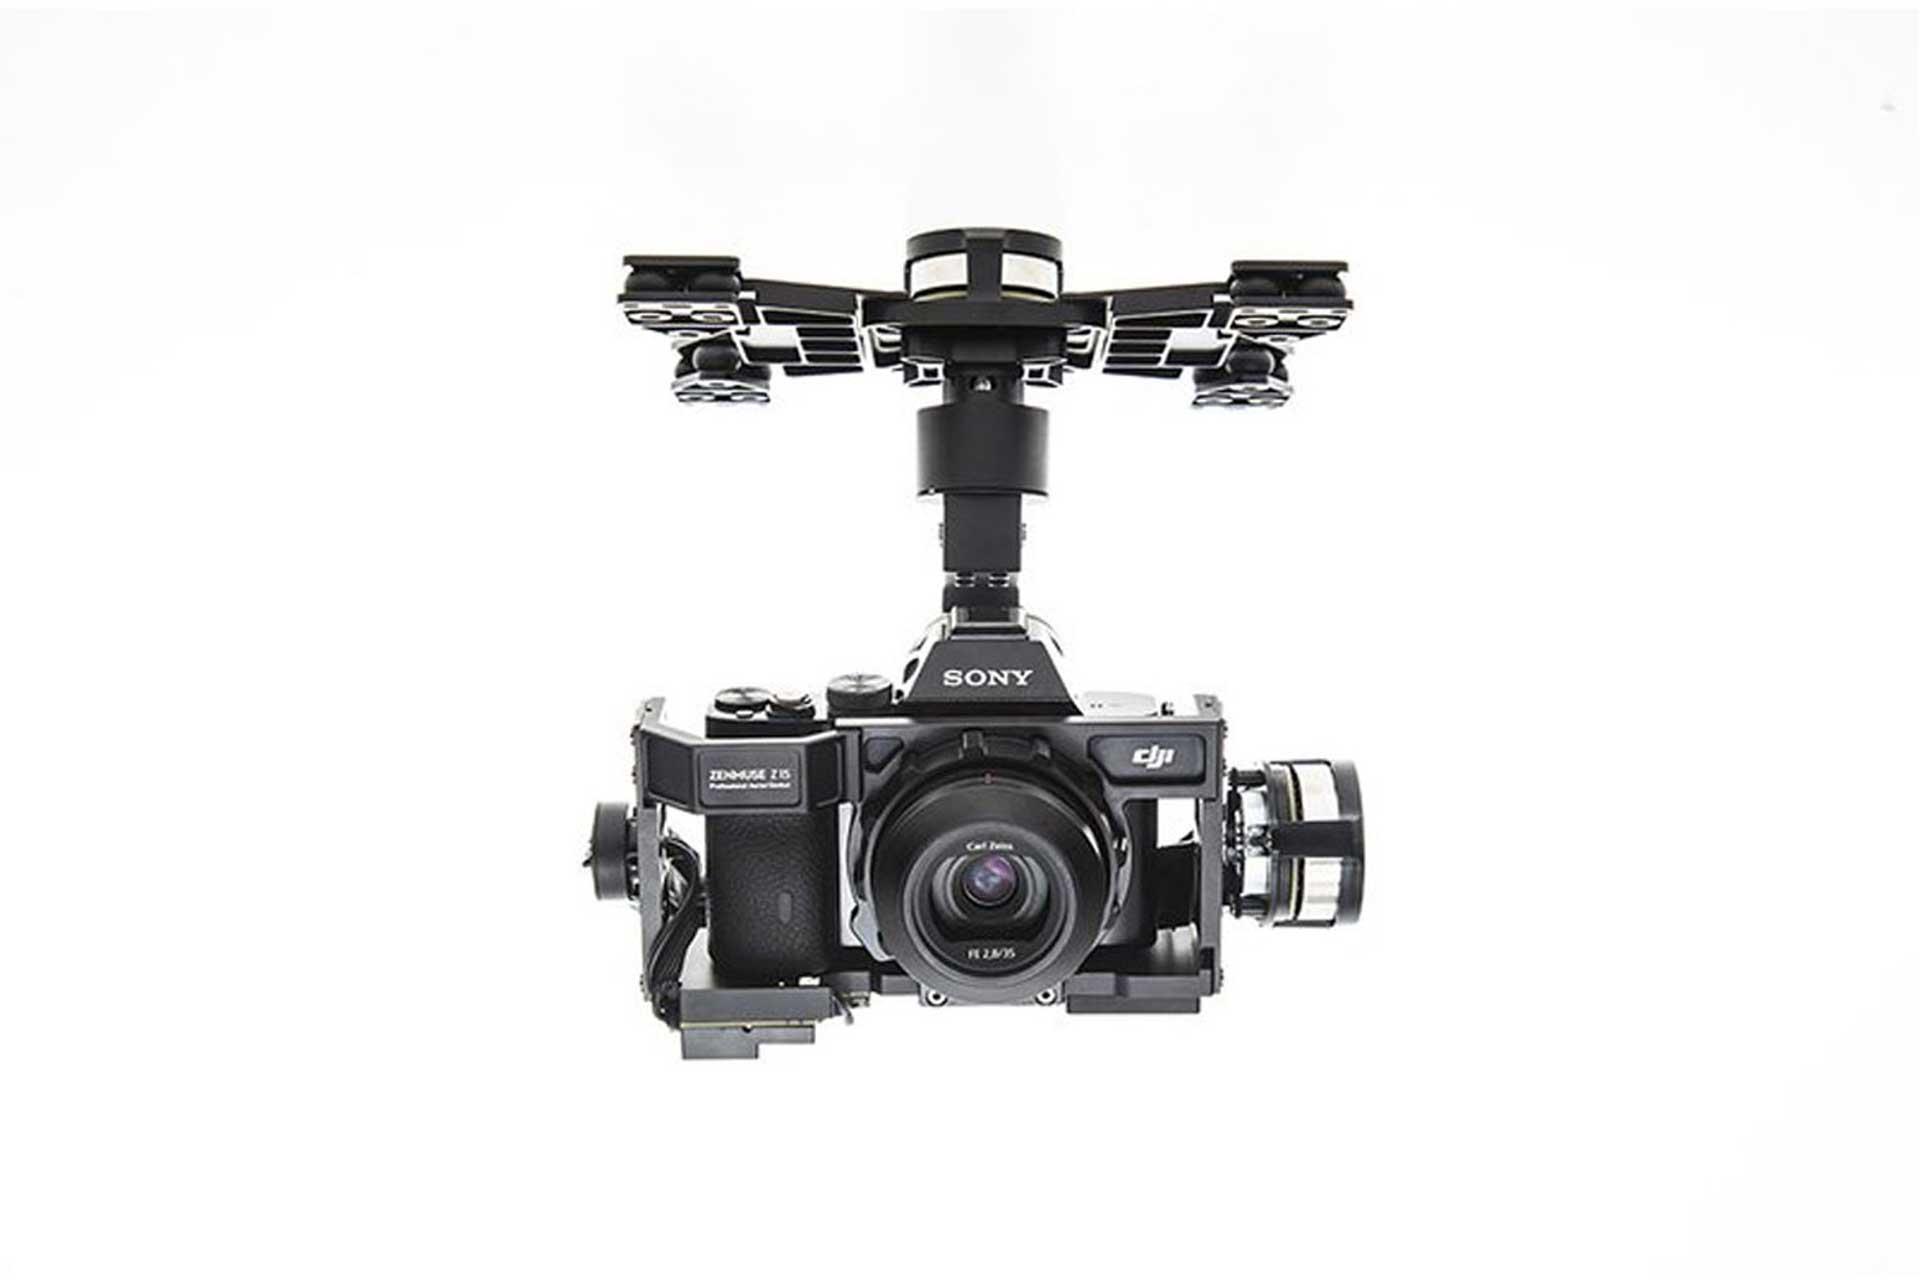 DJI ZENMUSE Z15 A7S CAMERA GIMBAL  FOR SONY A7S / A7R I (NOT II)